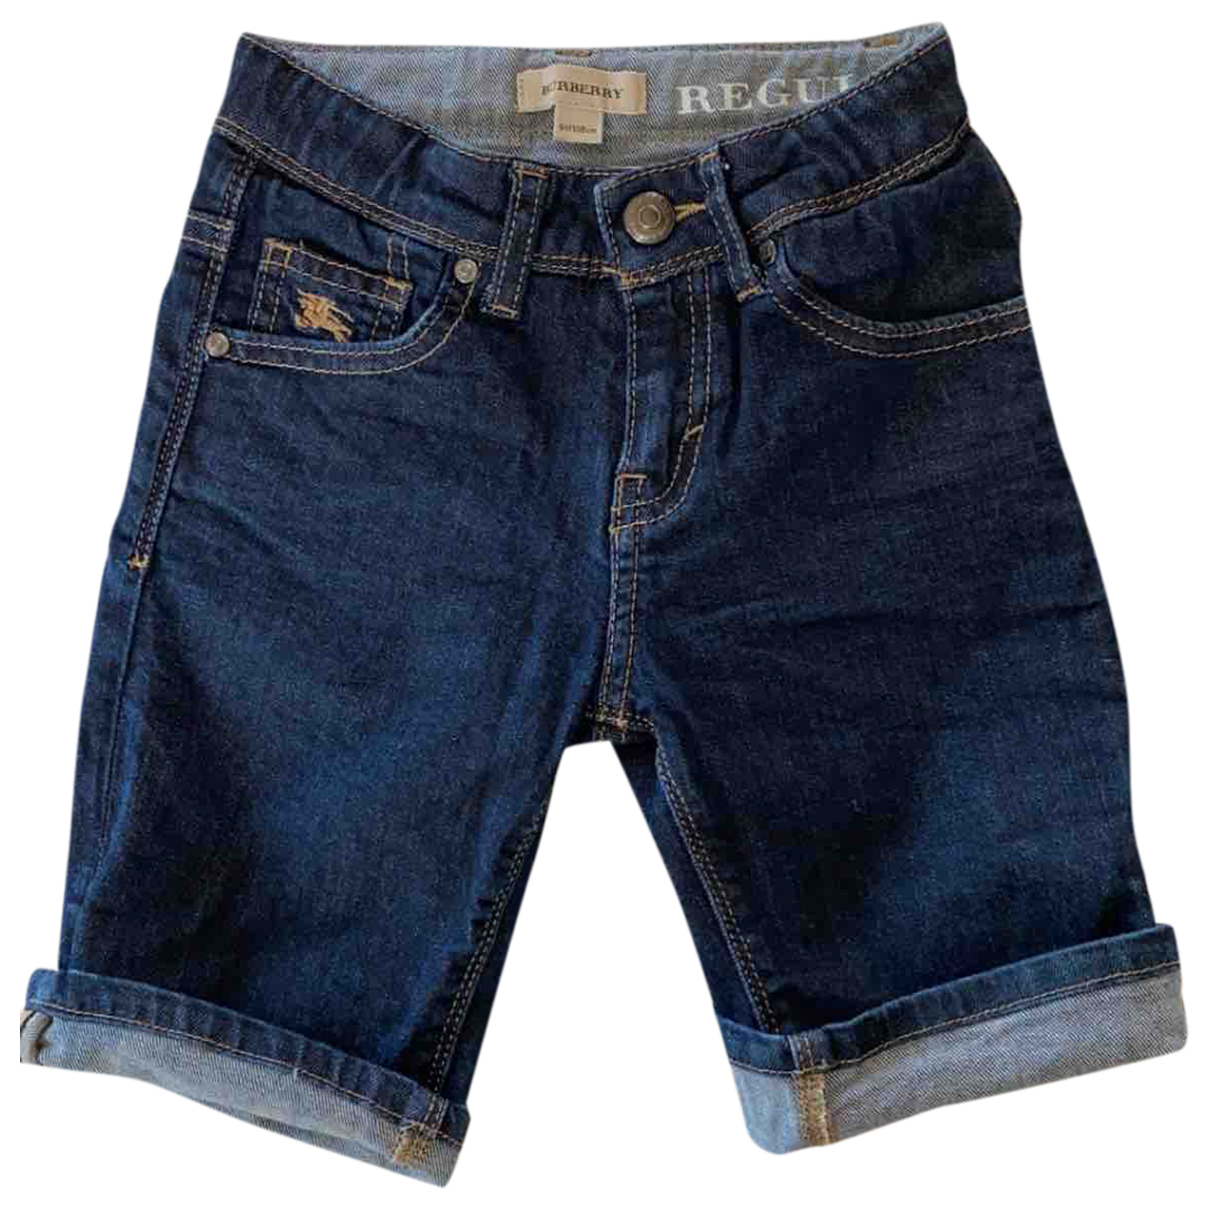 Burberry \N Shorts in  Blau Denim - Jeans